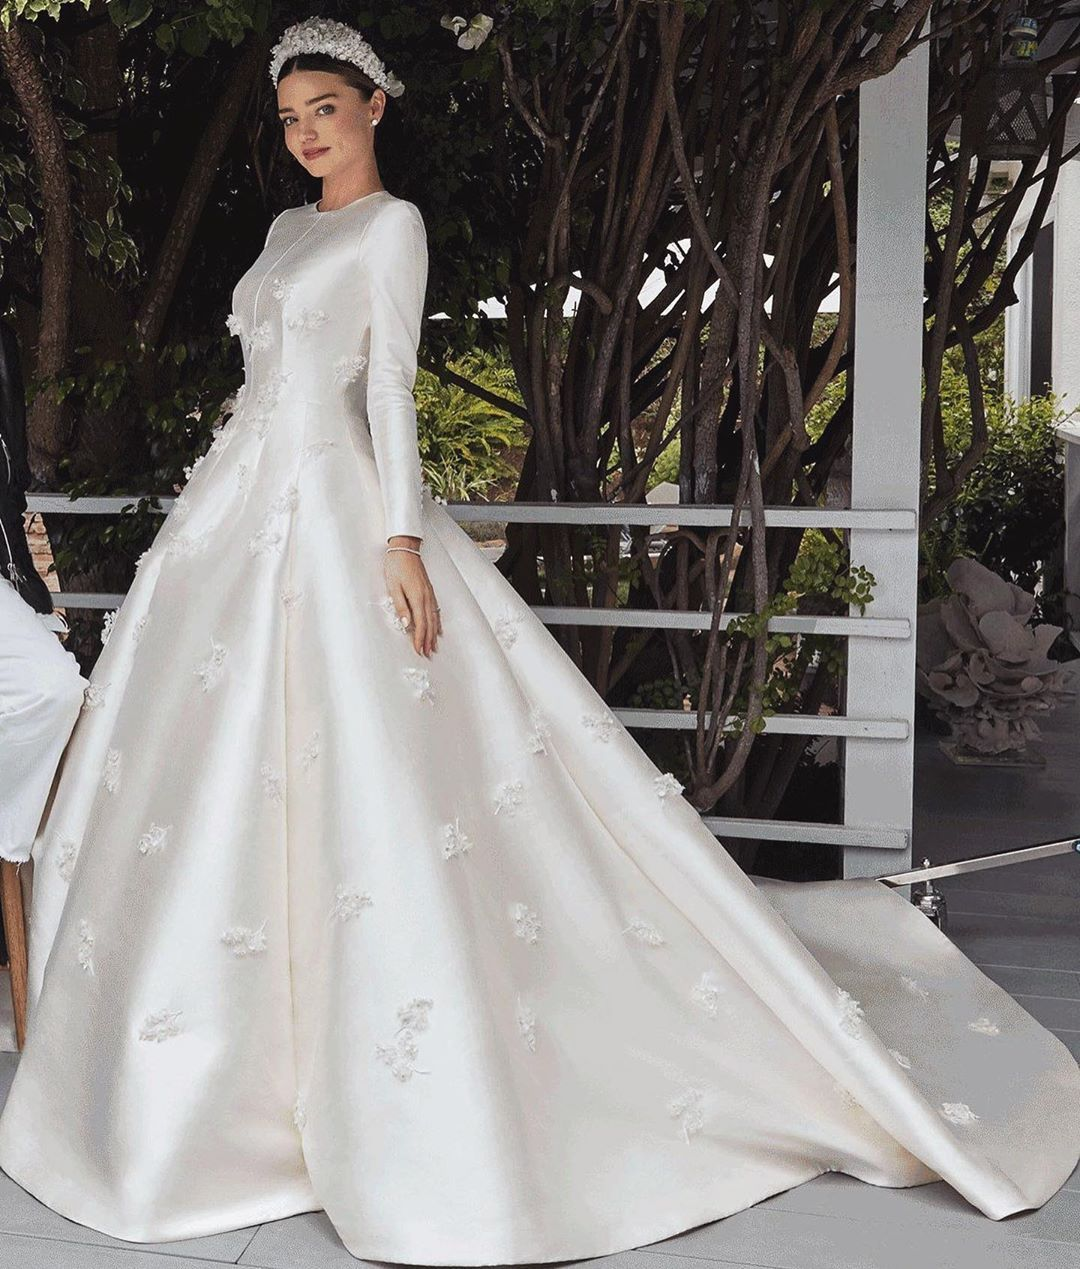 The Catwalk Italia Tci On Instagram Best Dior Wedding Dress